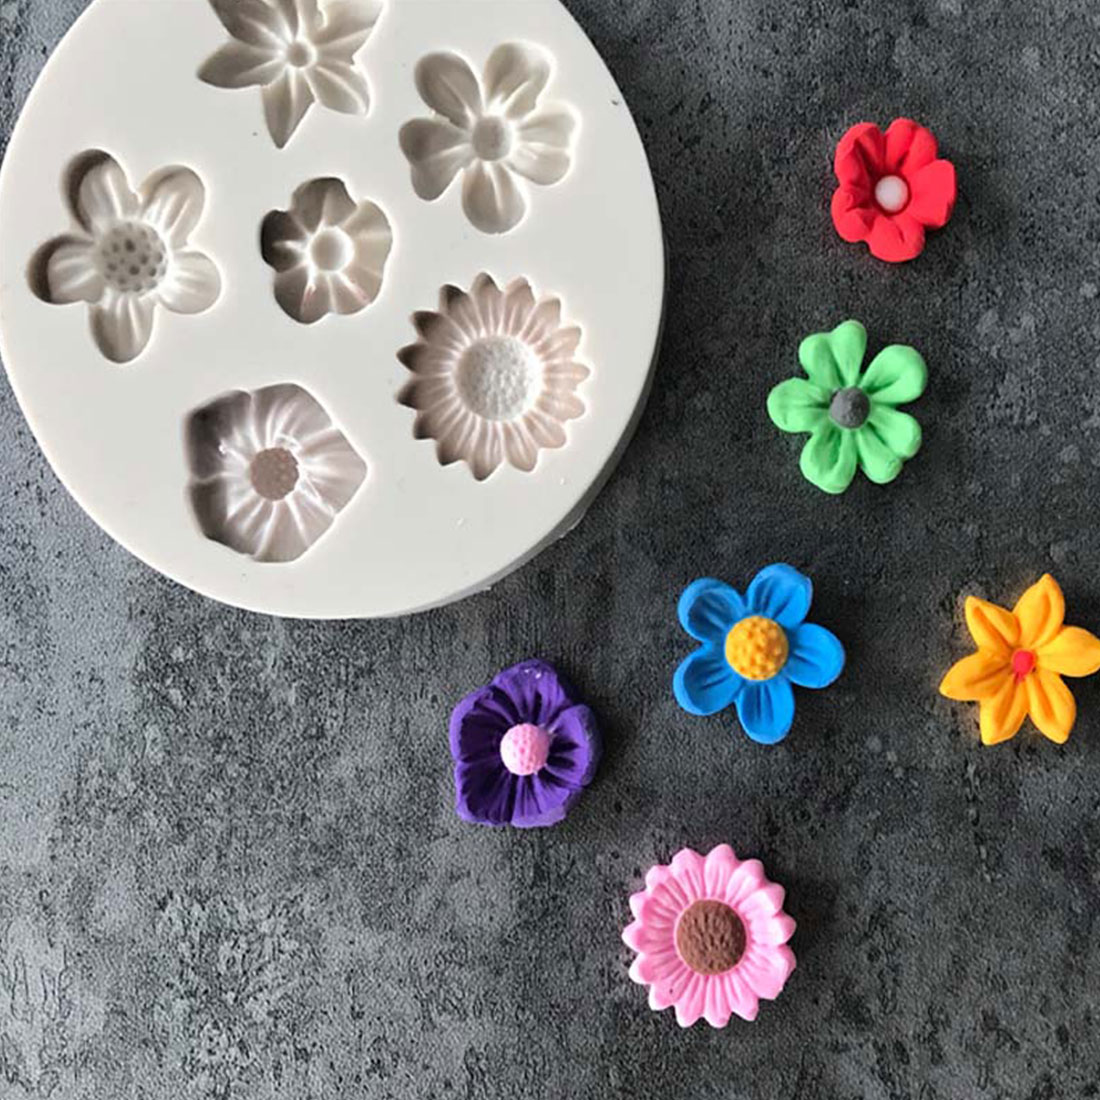 Useful 3D Flower Fondant Cake DIY Mold Silicone Mould Sugarcraft Decoration Baking Decorating Tools Kitchen Accessorie